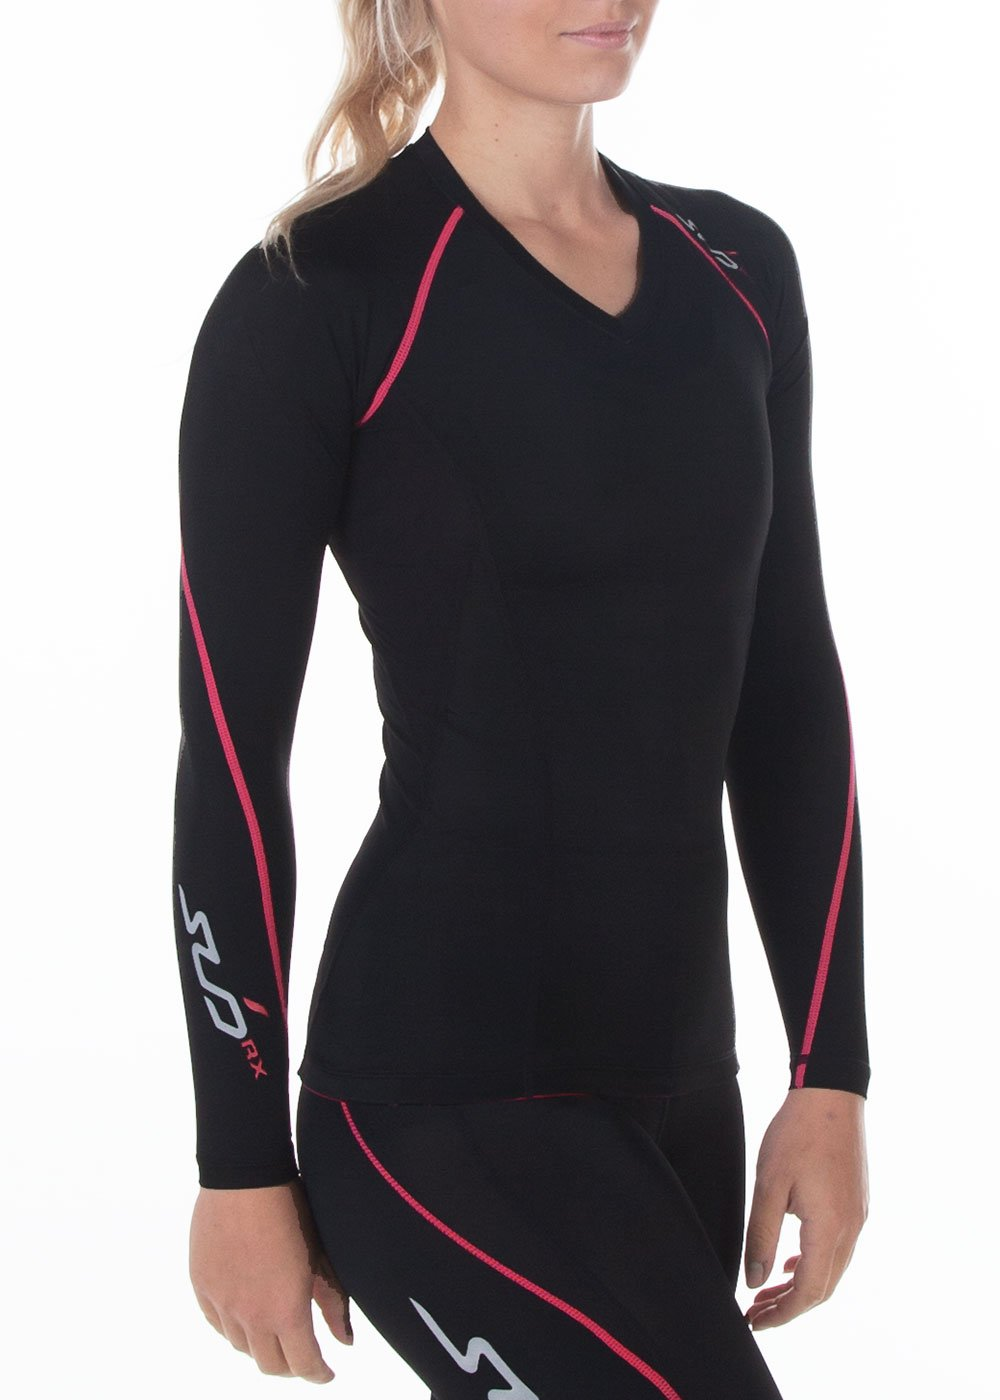 Sub Sports Womens Compression Long Sleeve Top Vest Gym Yoga Running Recovery Unen